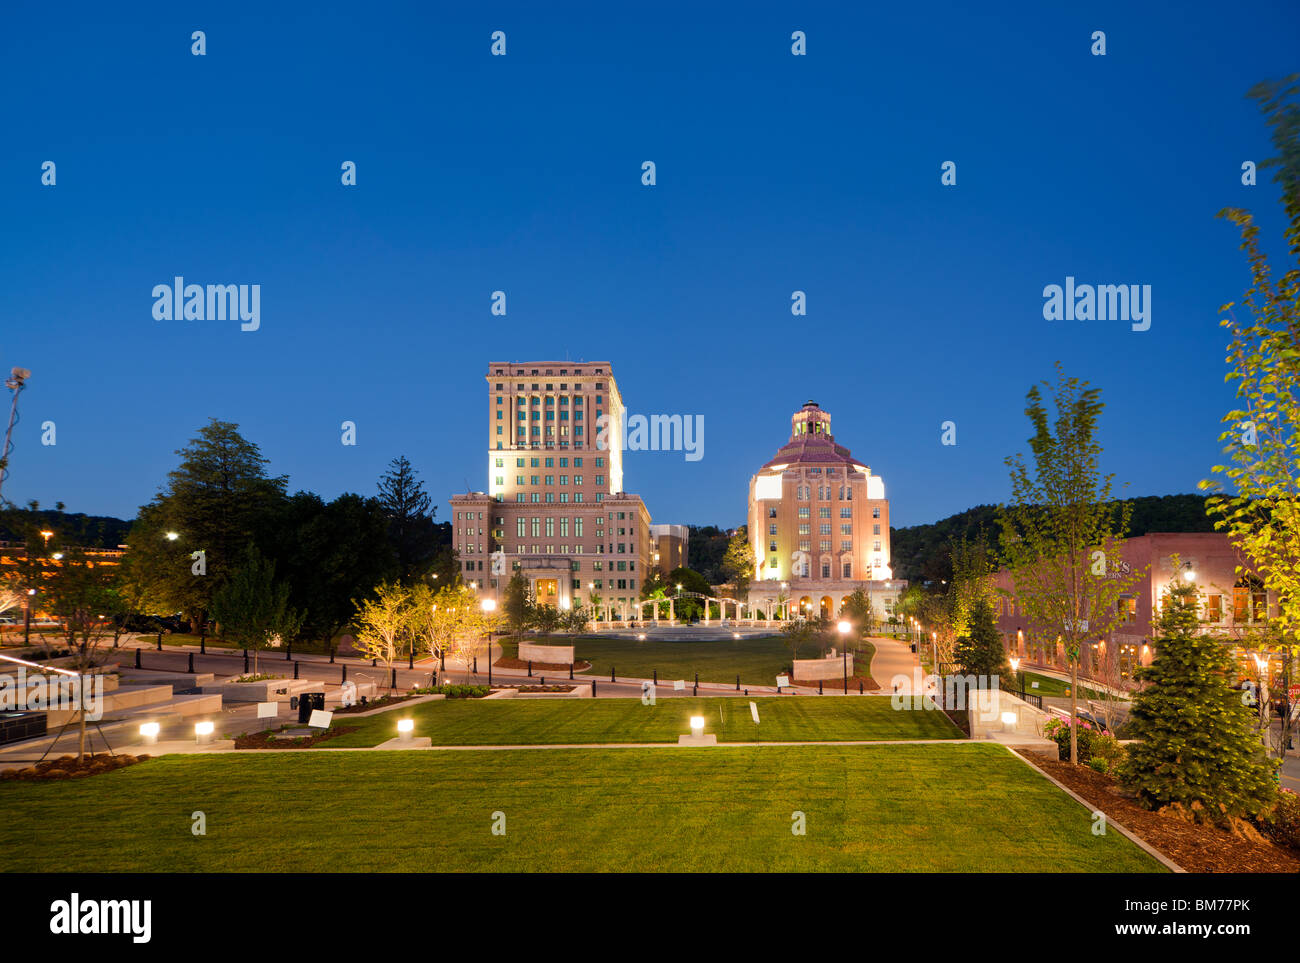 Downtown Asheville, North Carolina, NC. View of Art Deco architecture of City Hall and Court House building at dusk - Stock Image